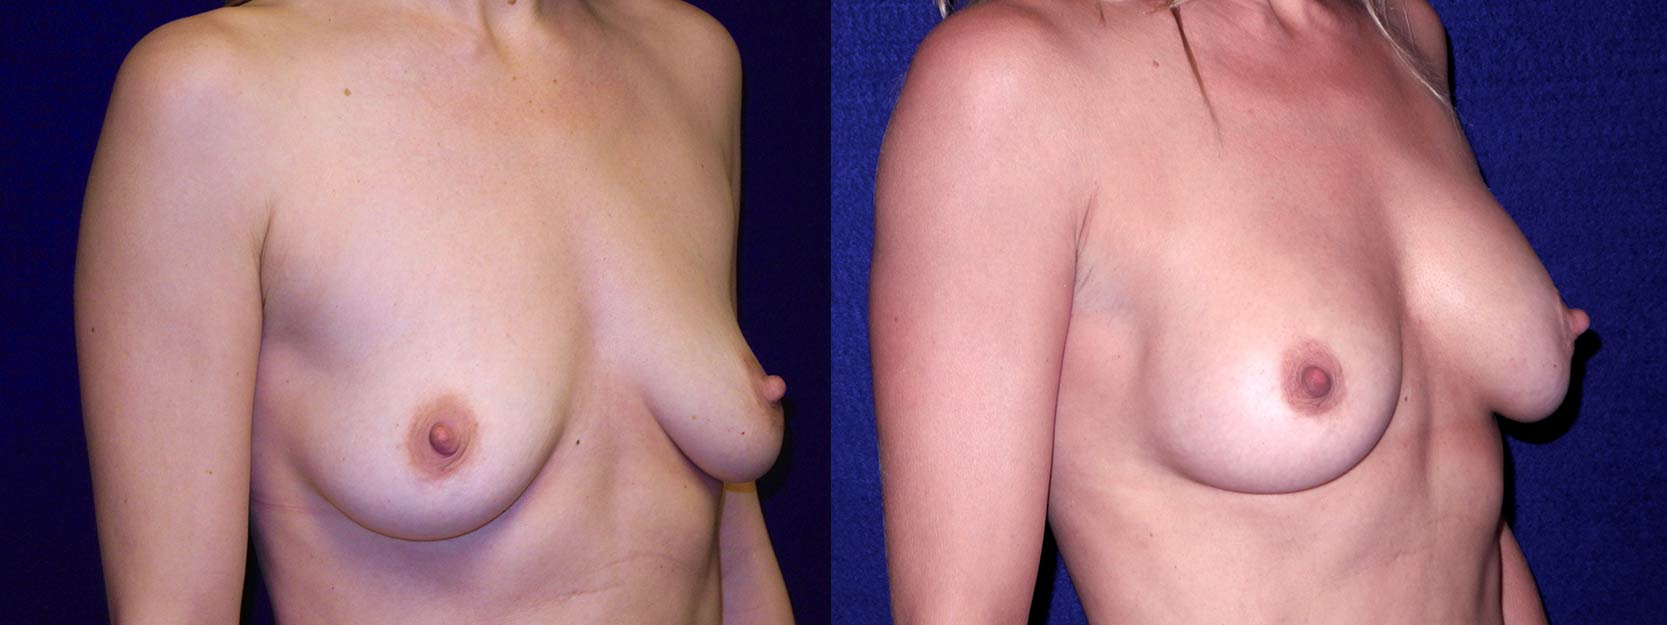 Right 3/4 View - Breast Augmentation After Pregnancy - Silicone Implants